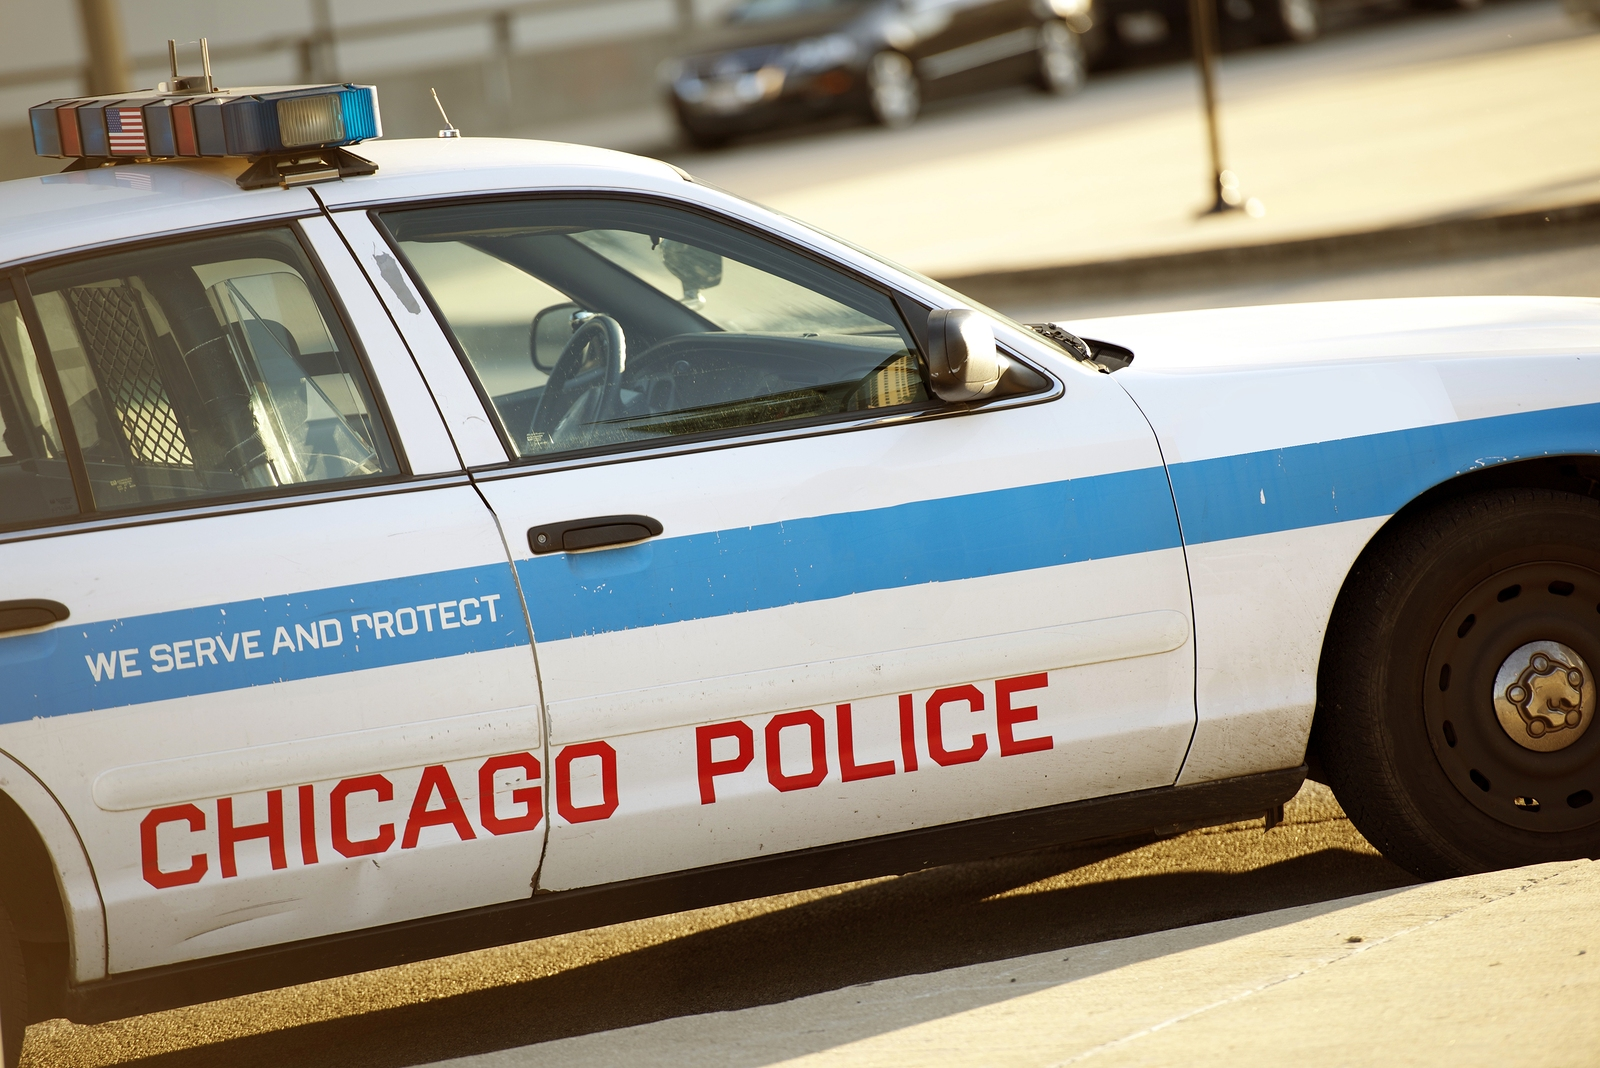 Police Cruiser in Chicago. Chicago Police Car.